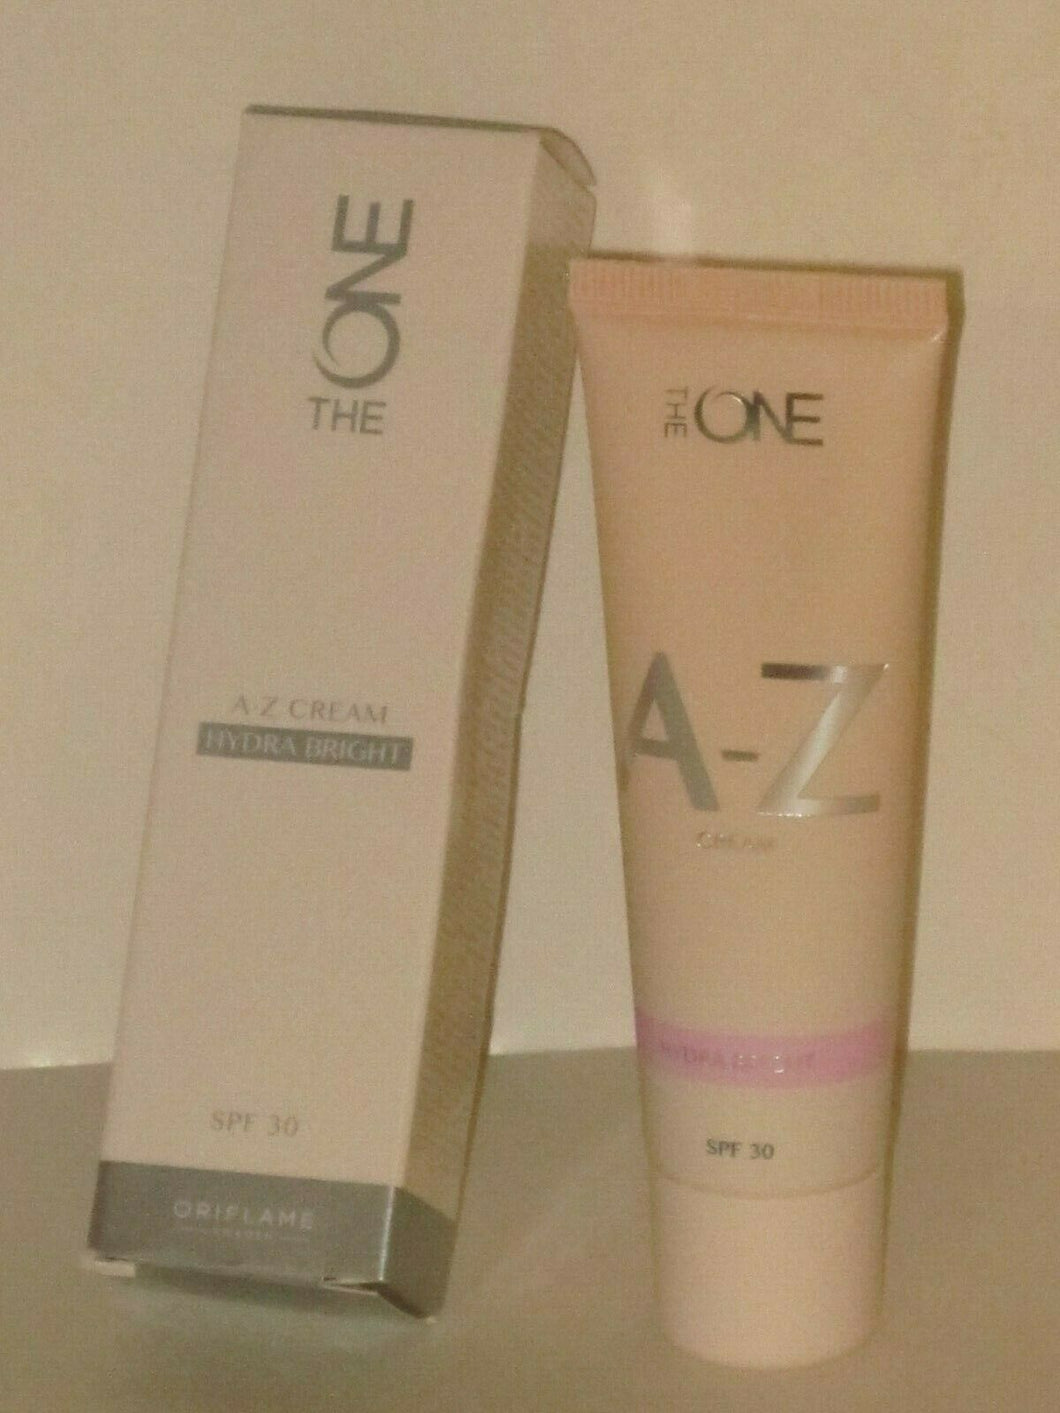 ORIFLAME SWEDEN THE ONE A-Z CREAM HYDRA BRIGHT SPF 30 - # NUDE 30 ml NEW!